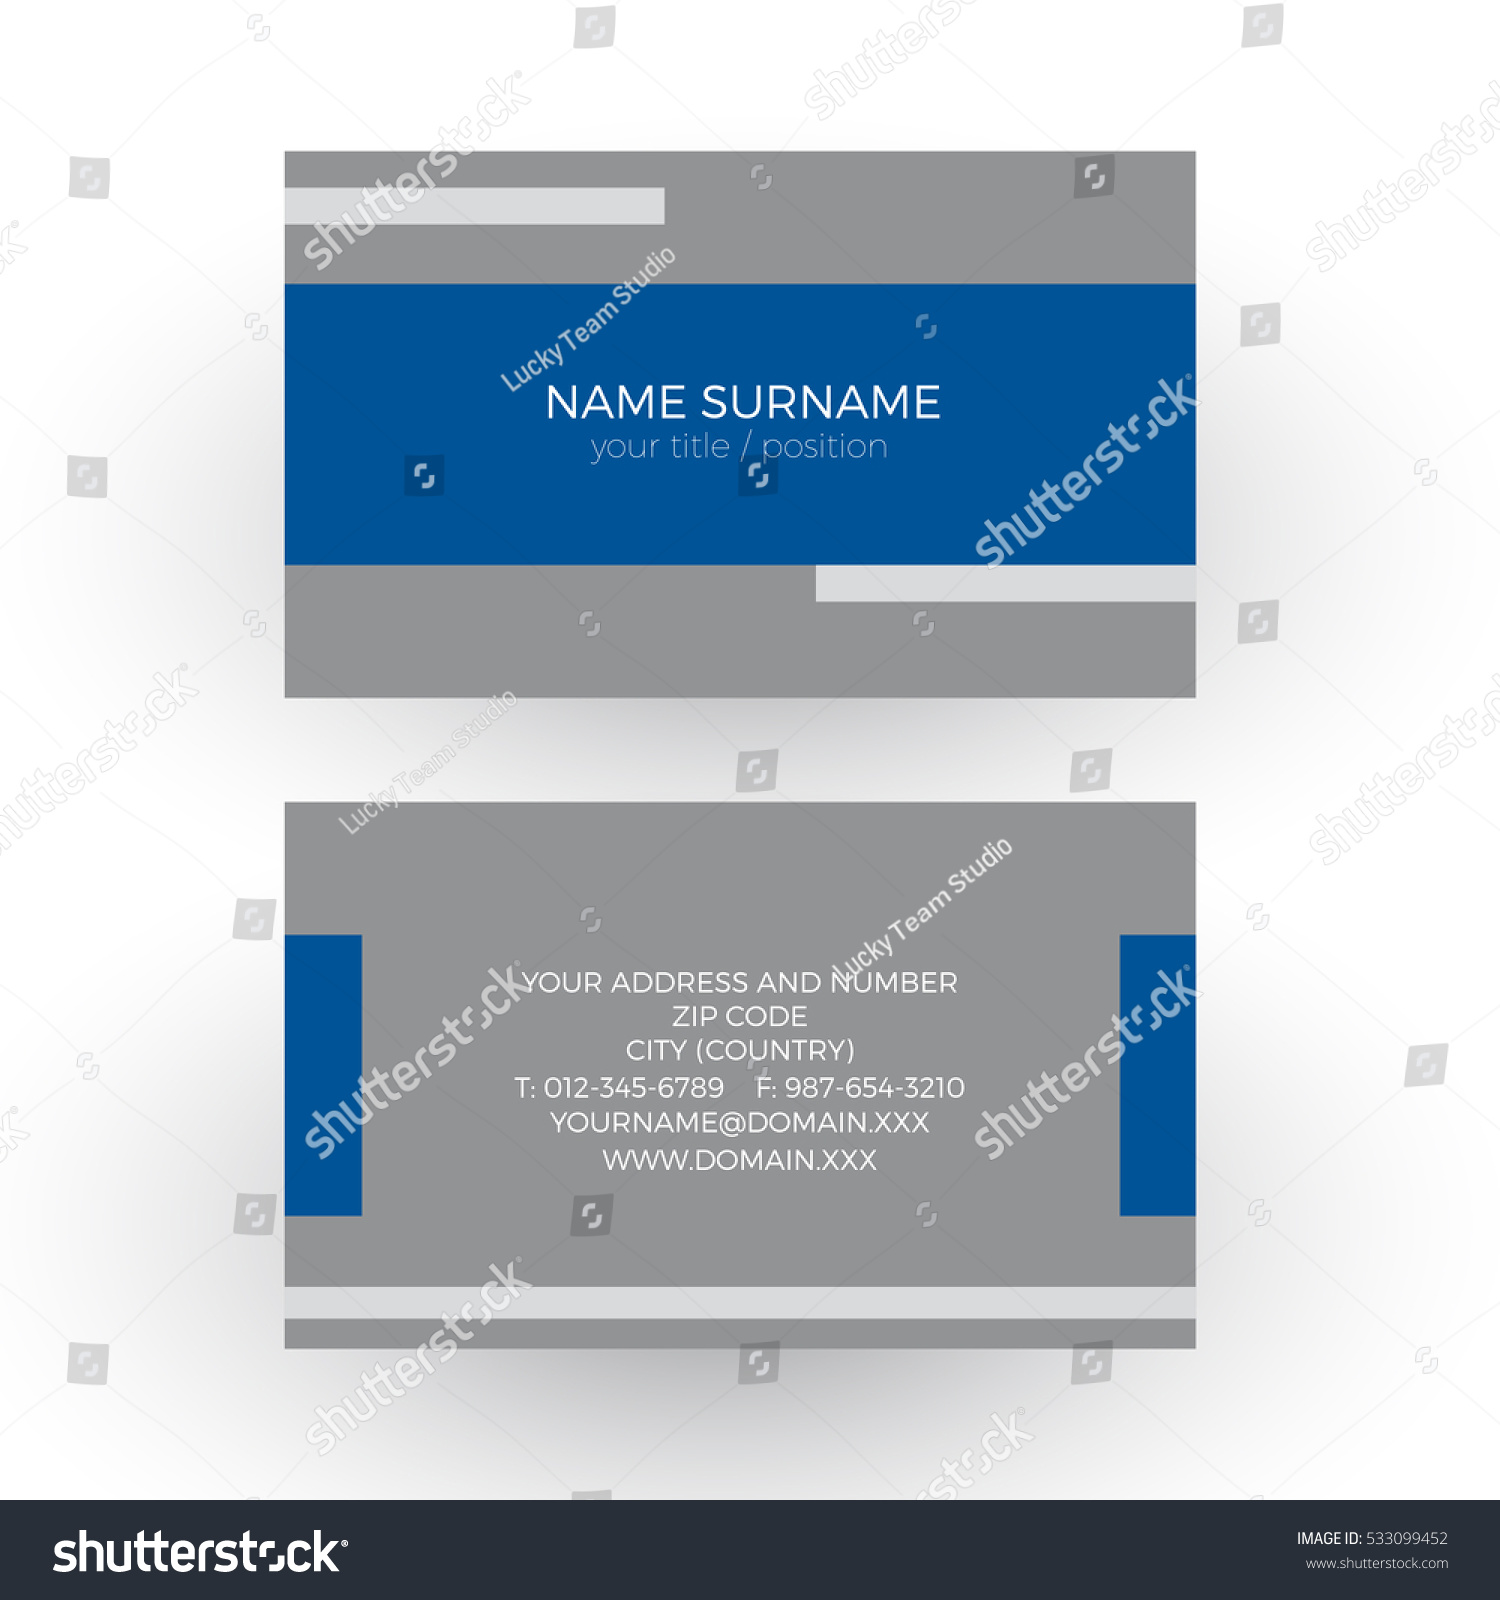 Unusual Formal Business Cards Images - Business Card Ideas ...